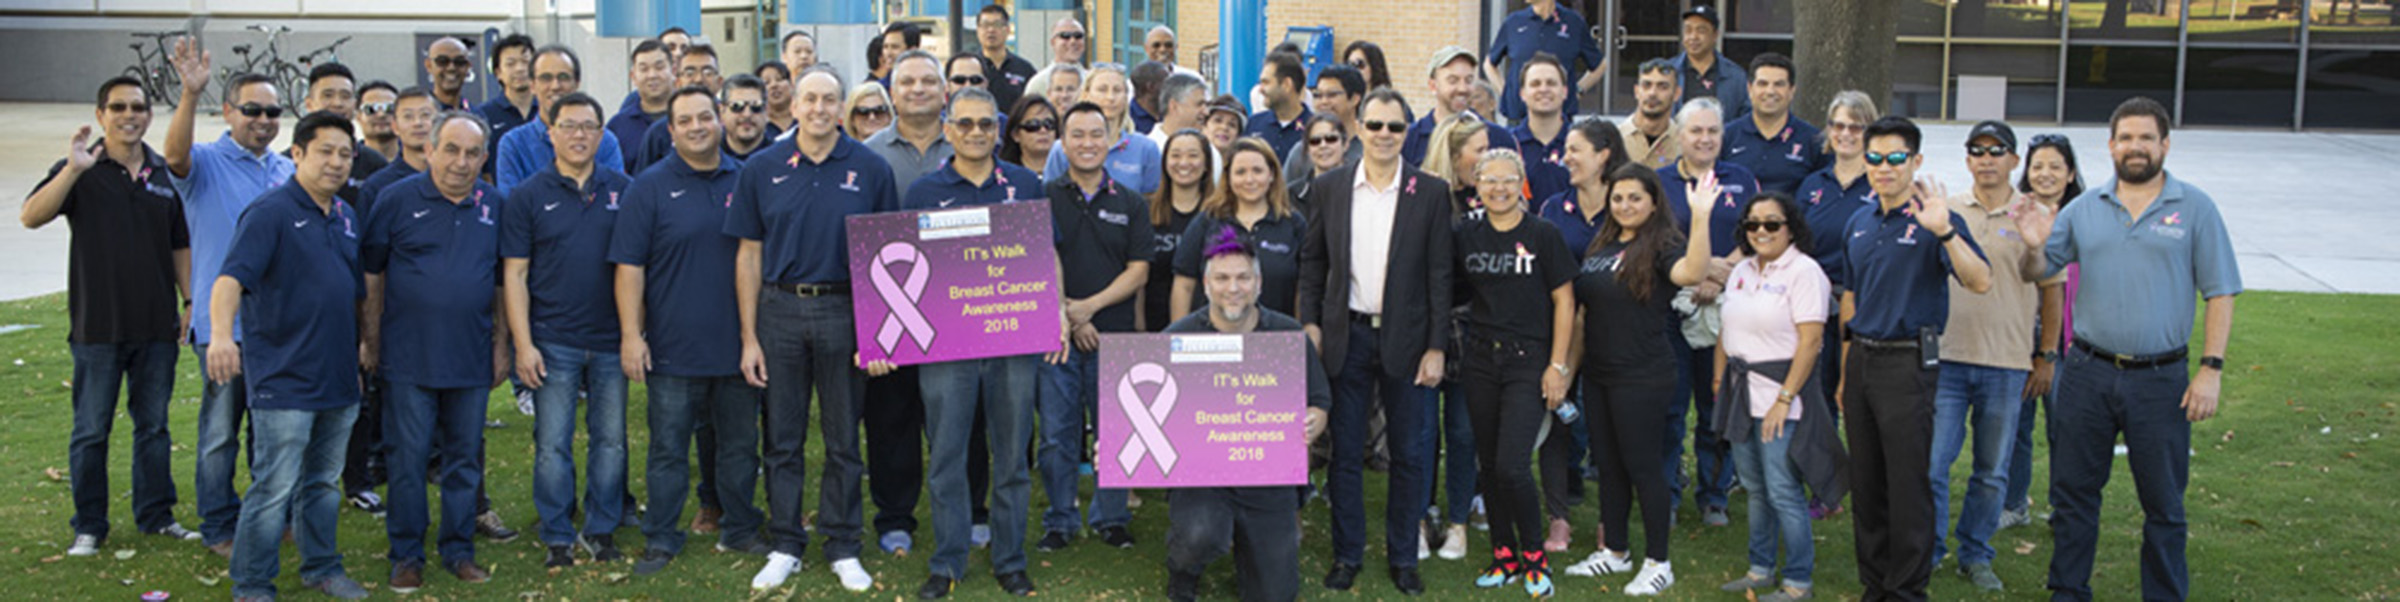 IT Staff at Walk for Breast Cancer Awareness